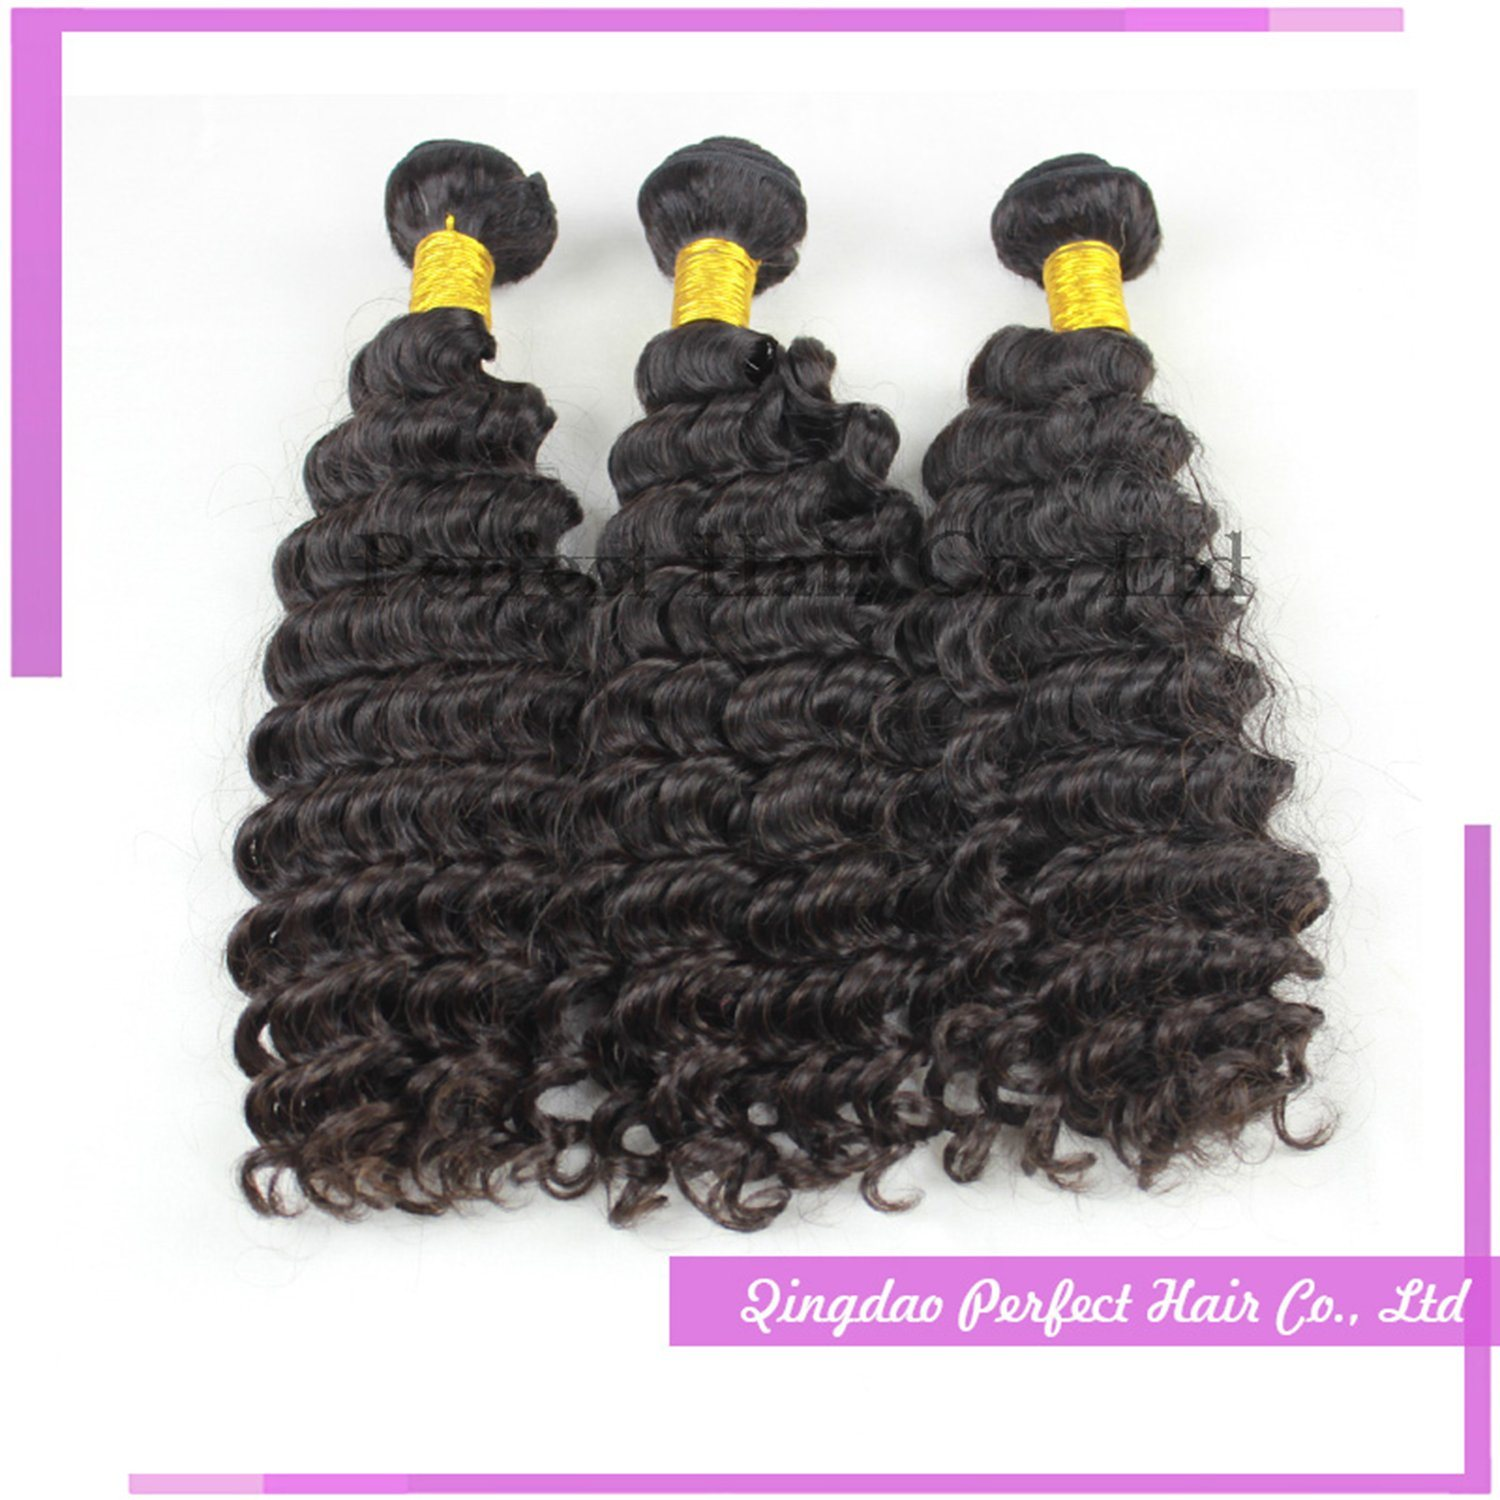 China New Hair Styles Good Price Dark Brown Curly Hair Extensions